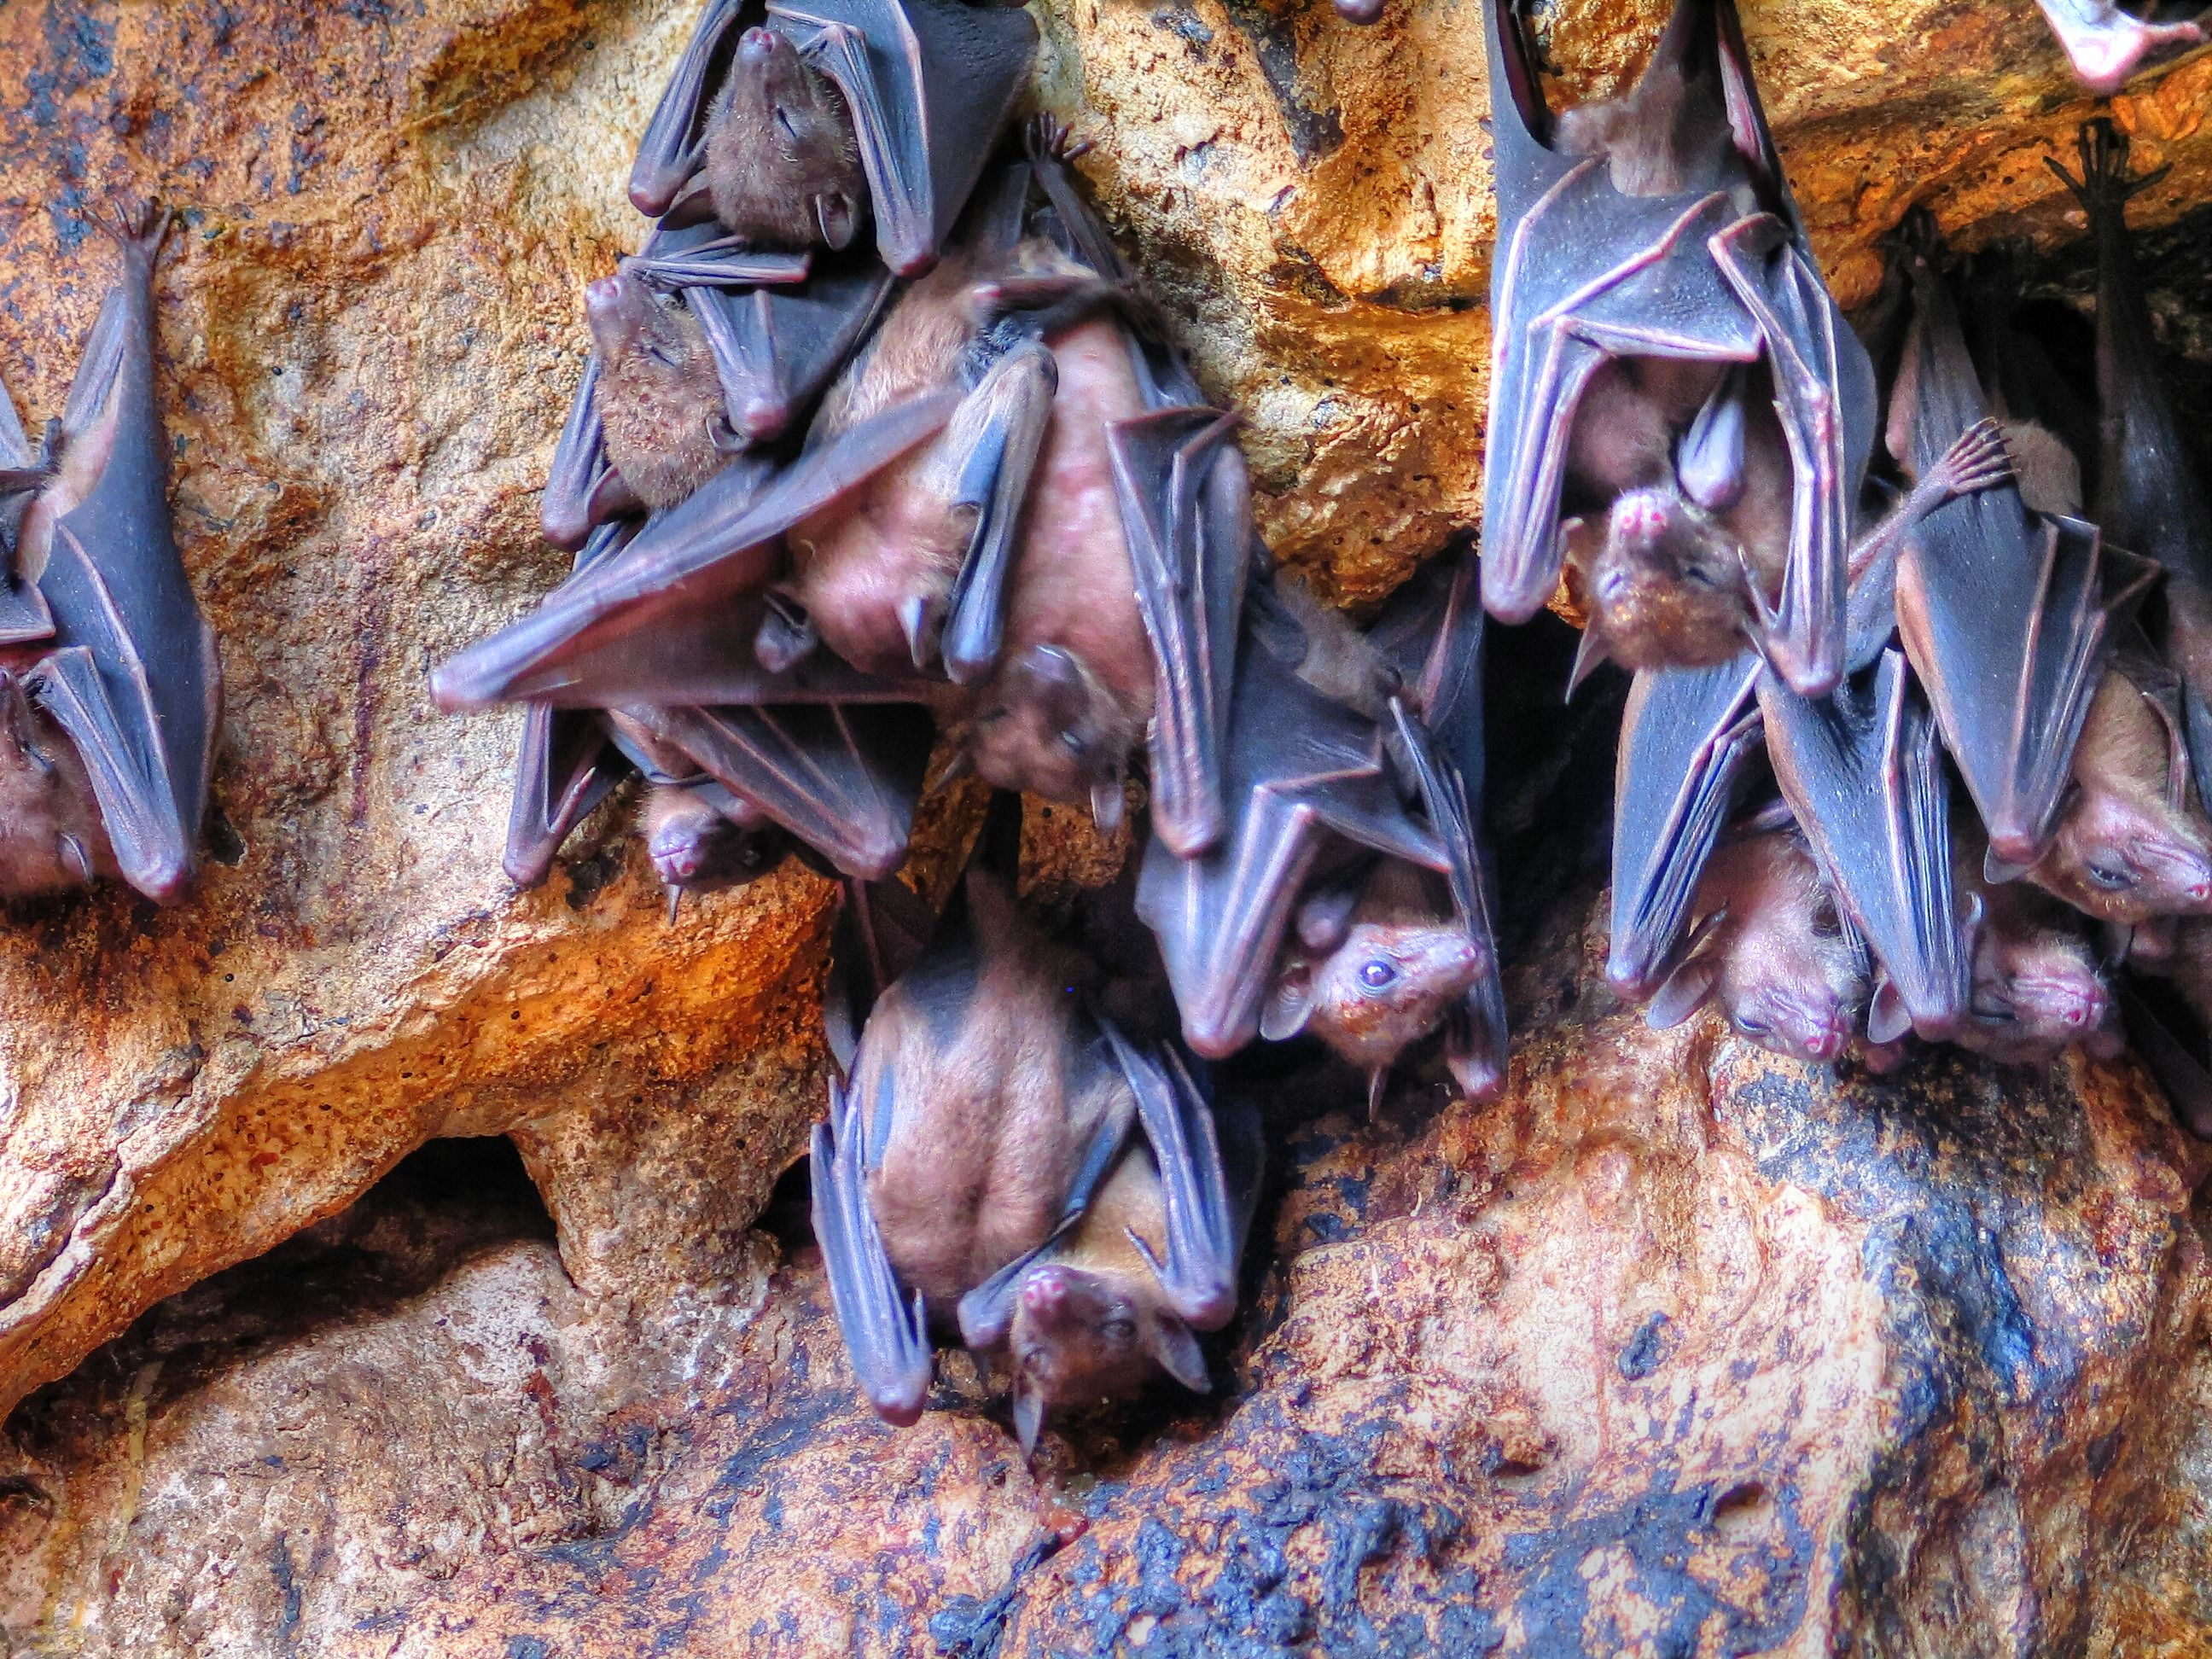 Bats stay warm by wrapping their wings around their bodies.